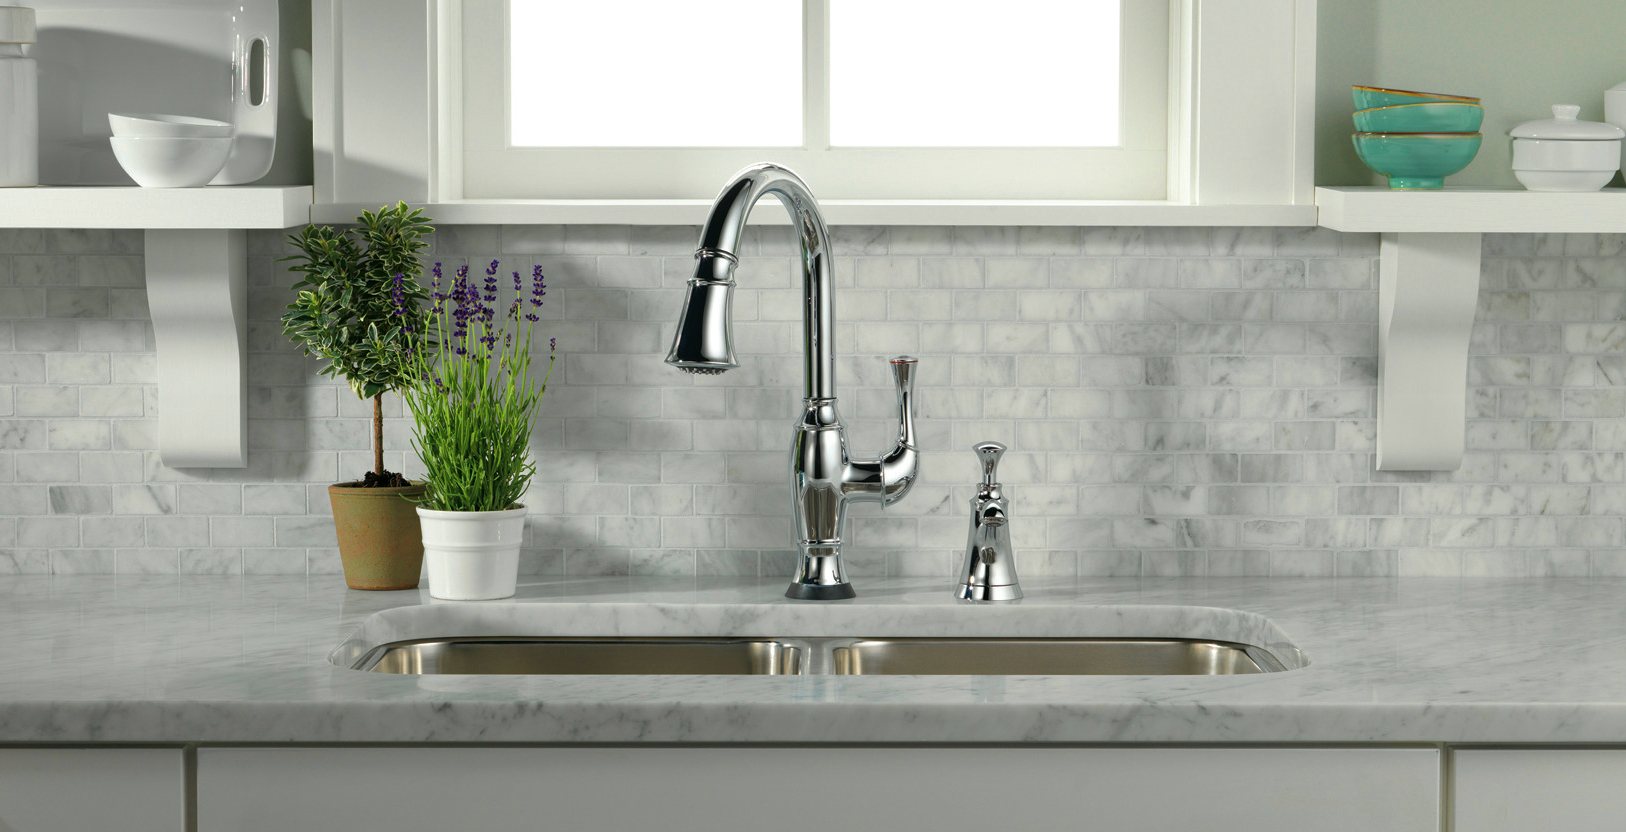 LF Sinks and faucets